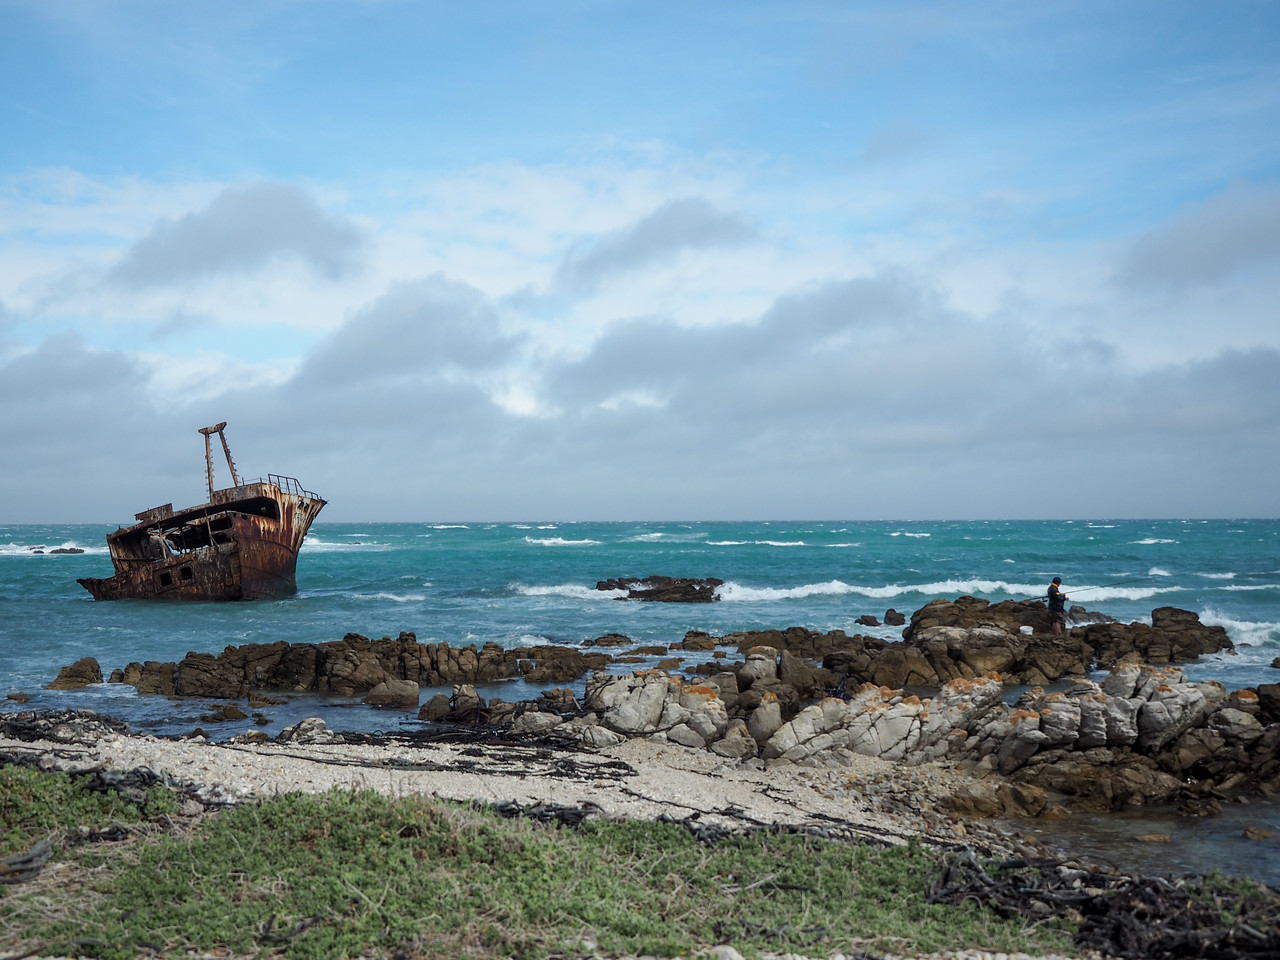 Shipwreck near Cape Agulhas